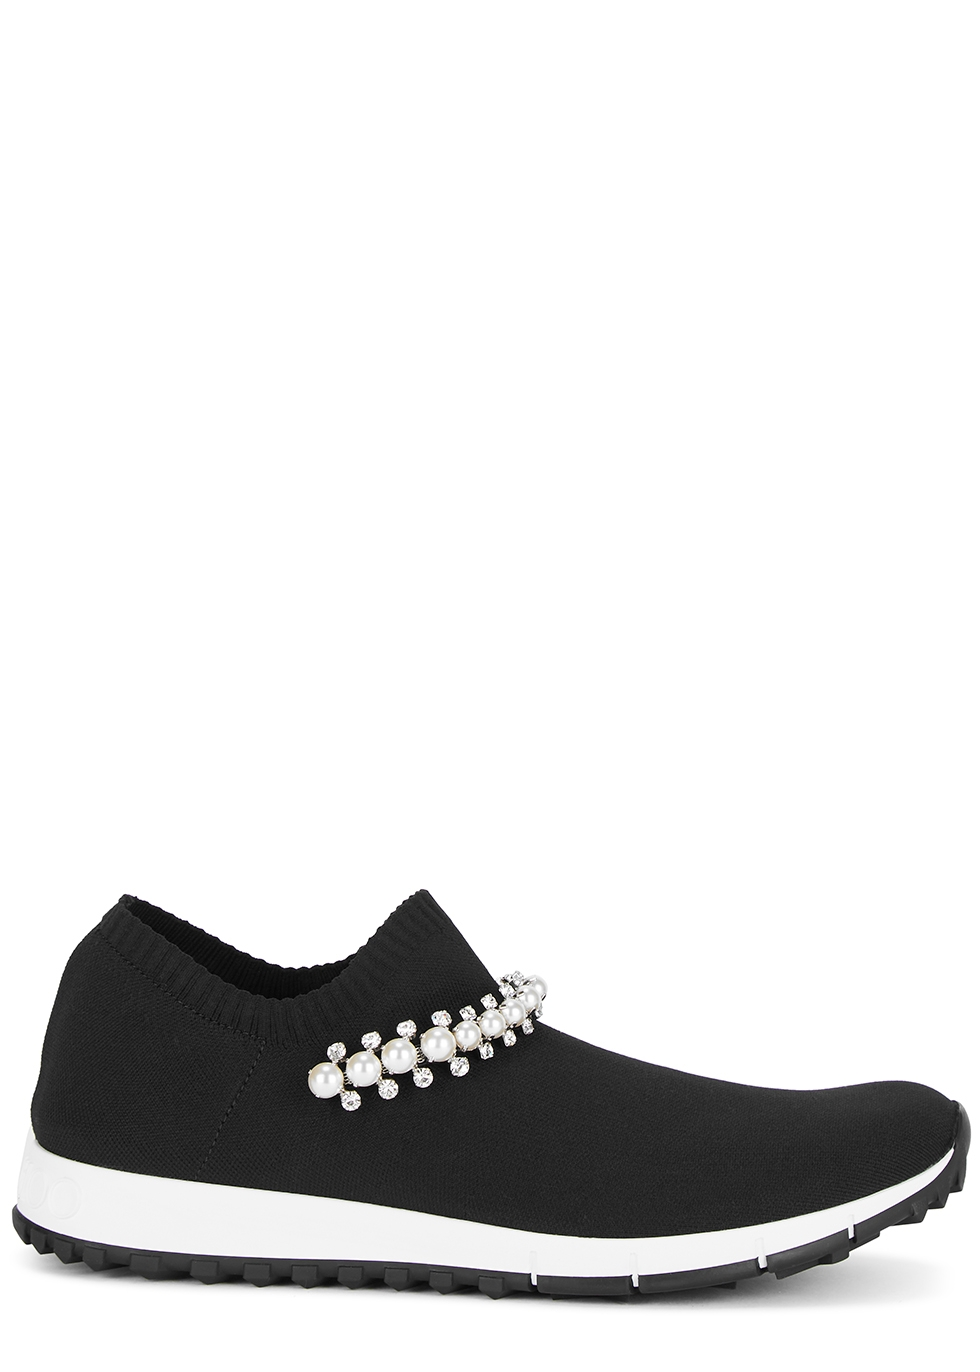 Verona faux pearl-embellished stretch-knit sneakers